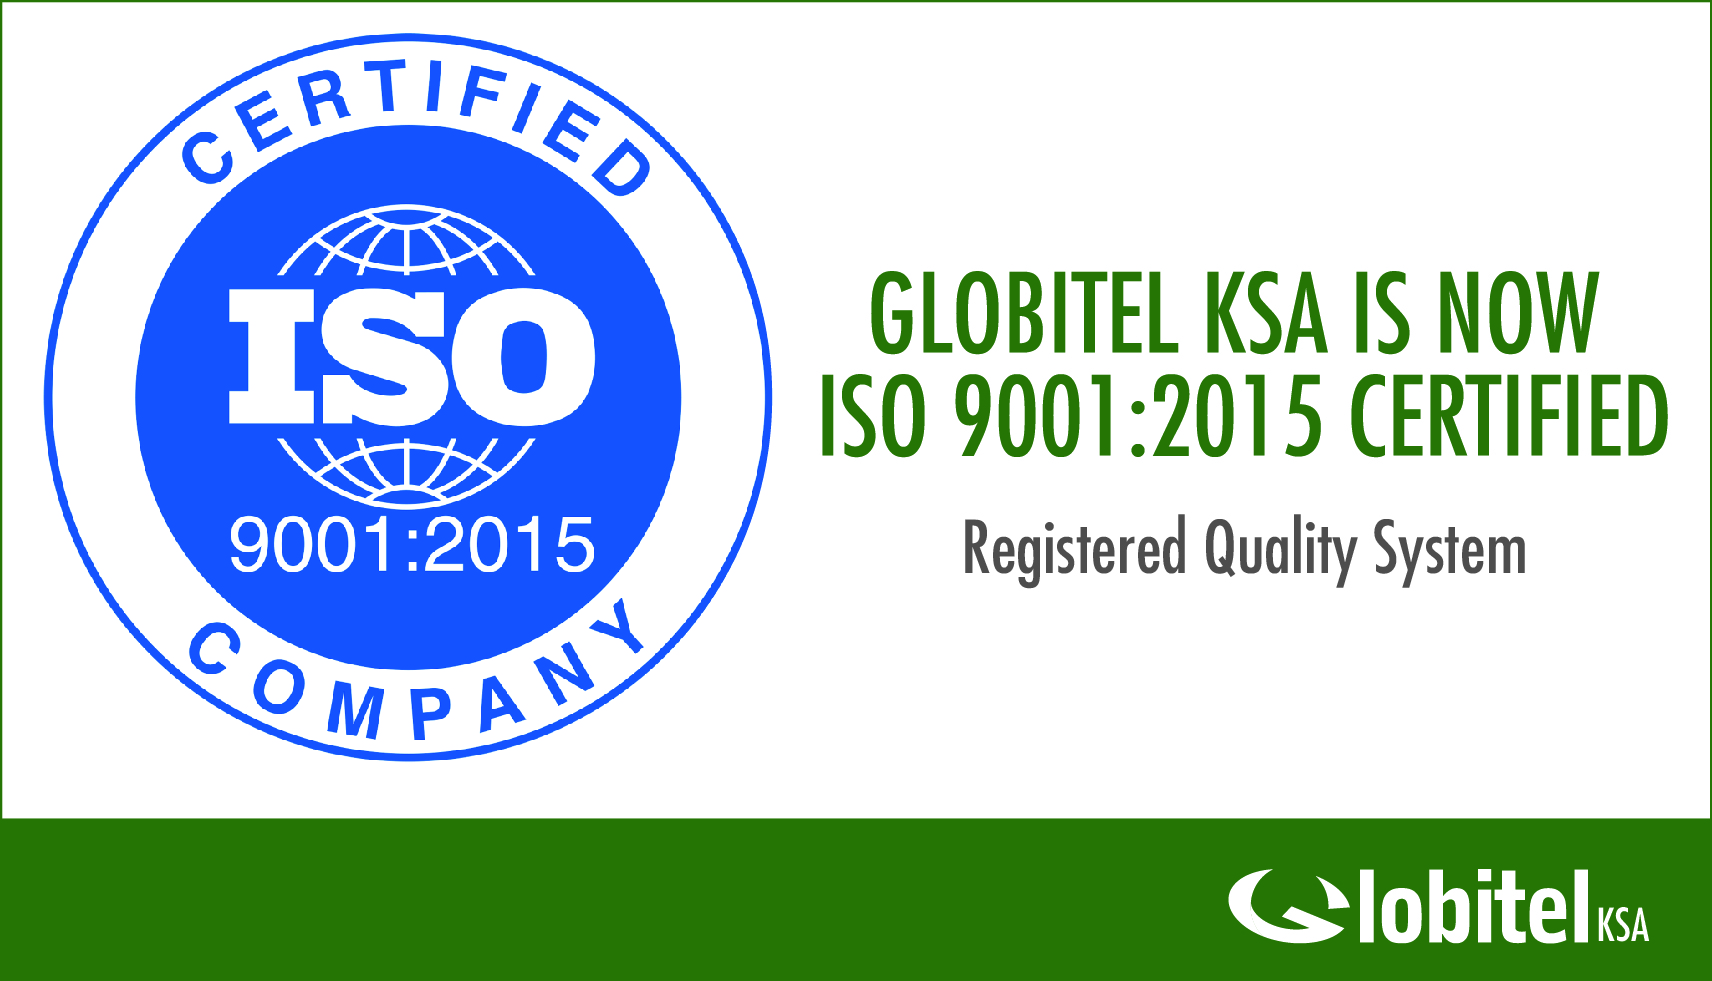 Globitel KSA is now ISO 9001:2015 Certified